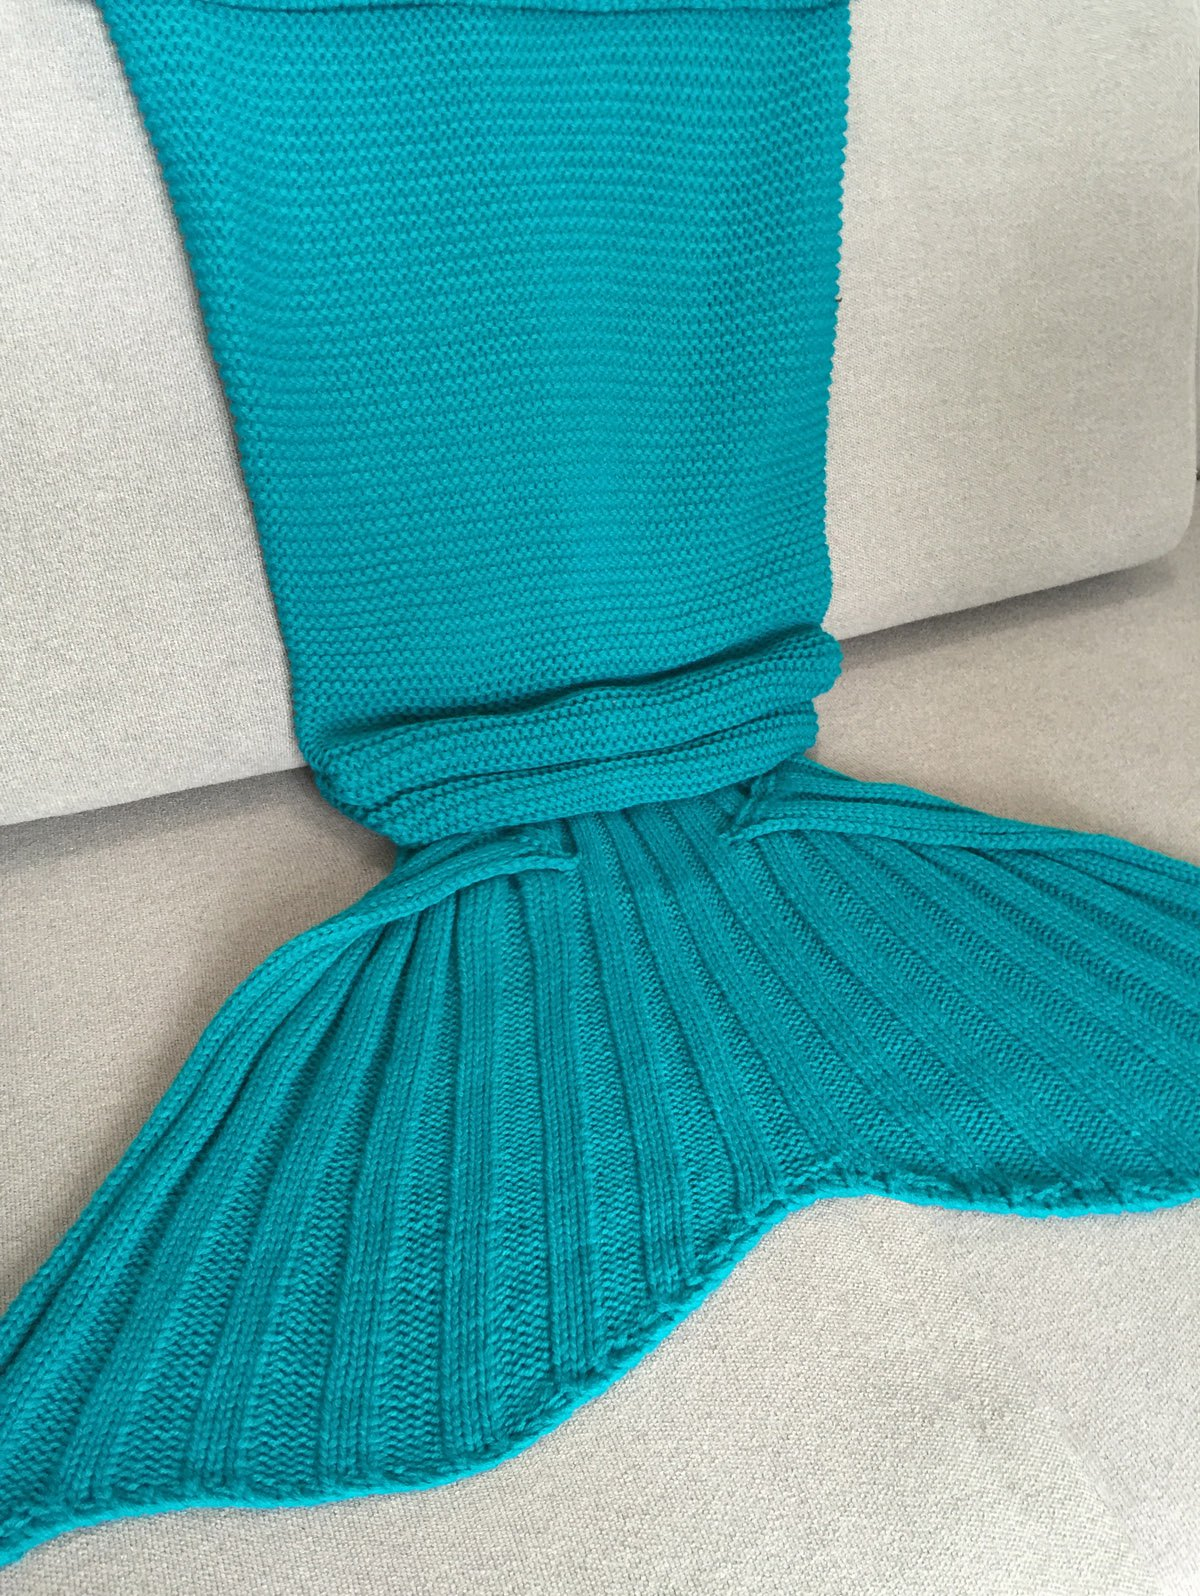 High Quality Solid Color Knitted Mermaid Tail Design Blankets For Adult - TURQUOISE